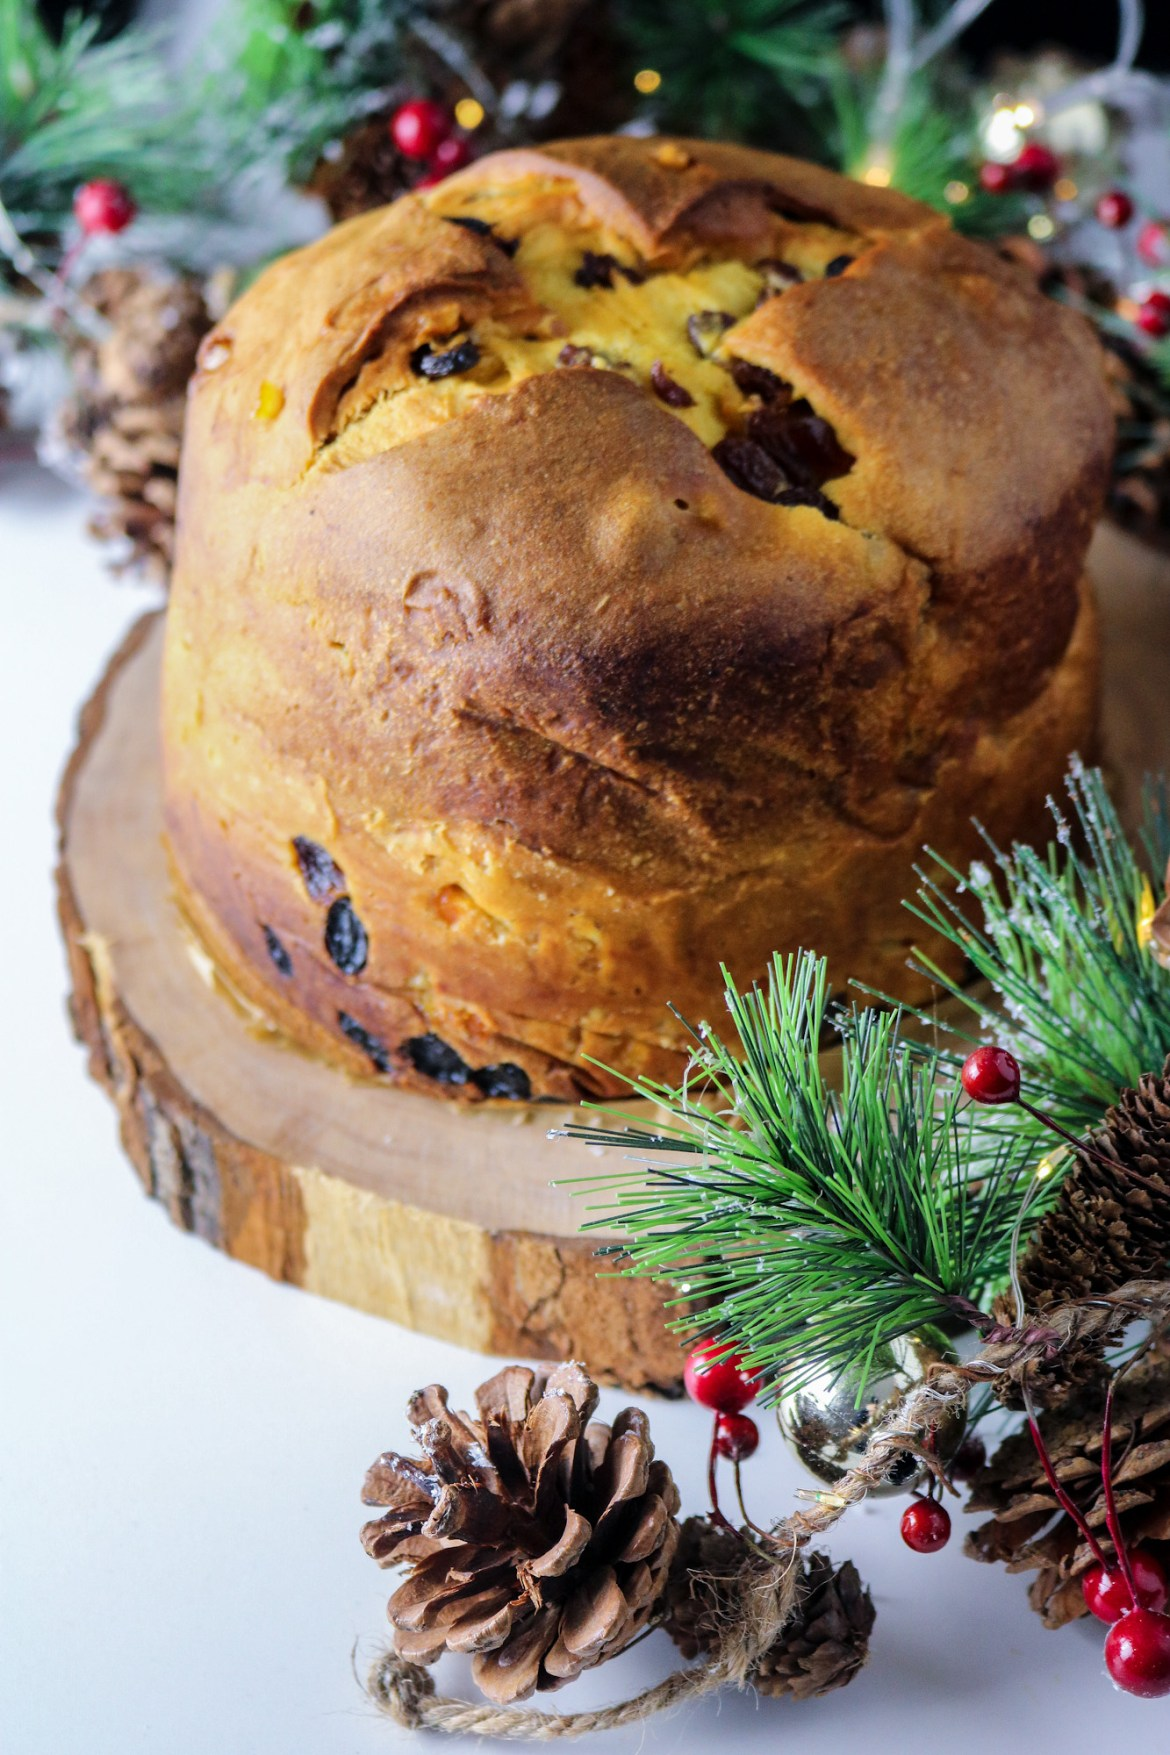 whole panettone on a wooden tray